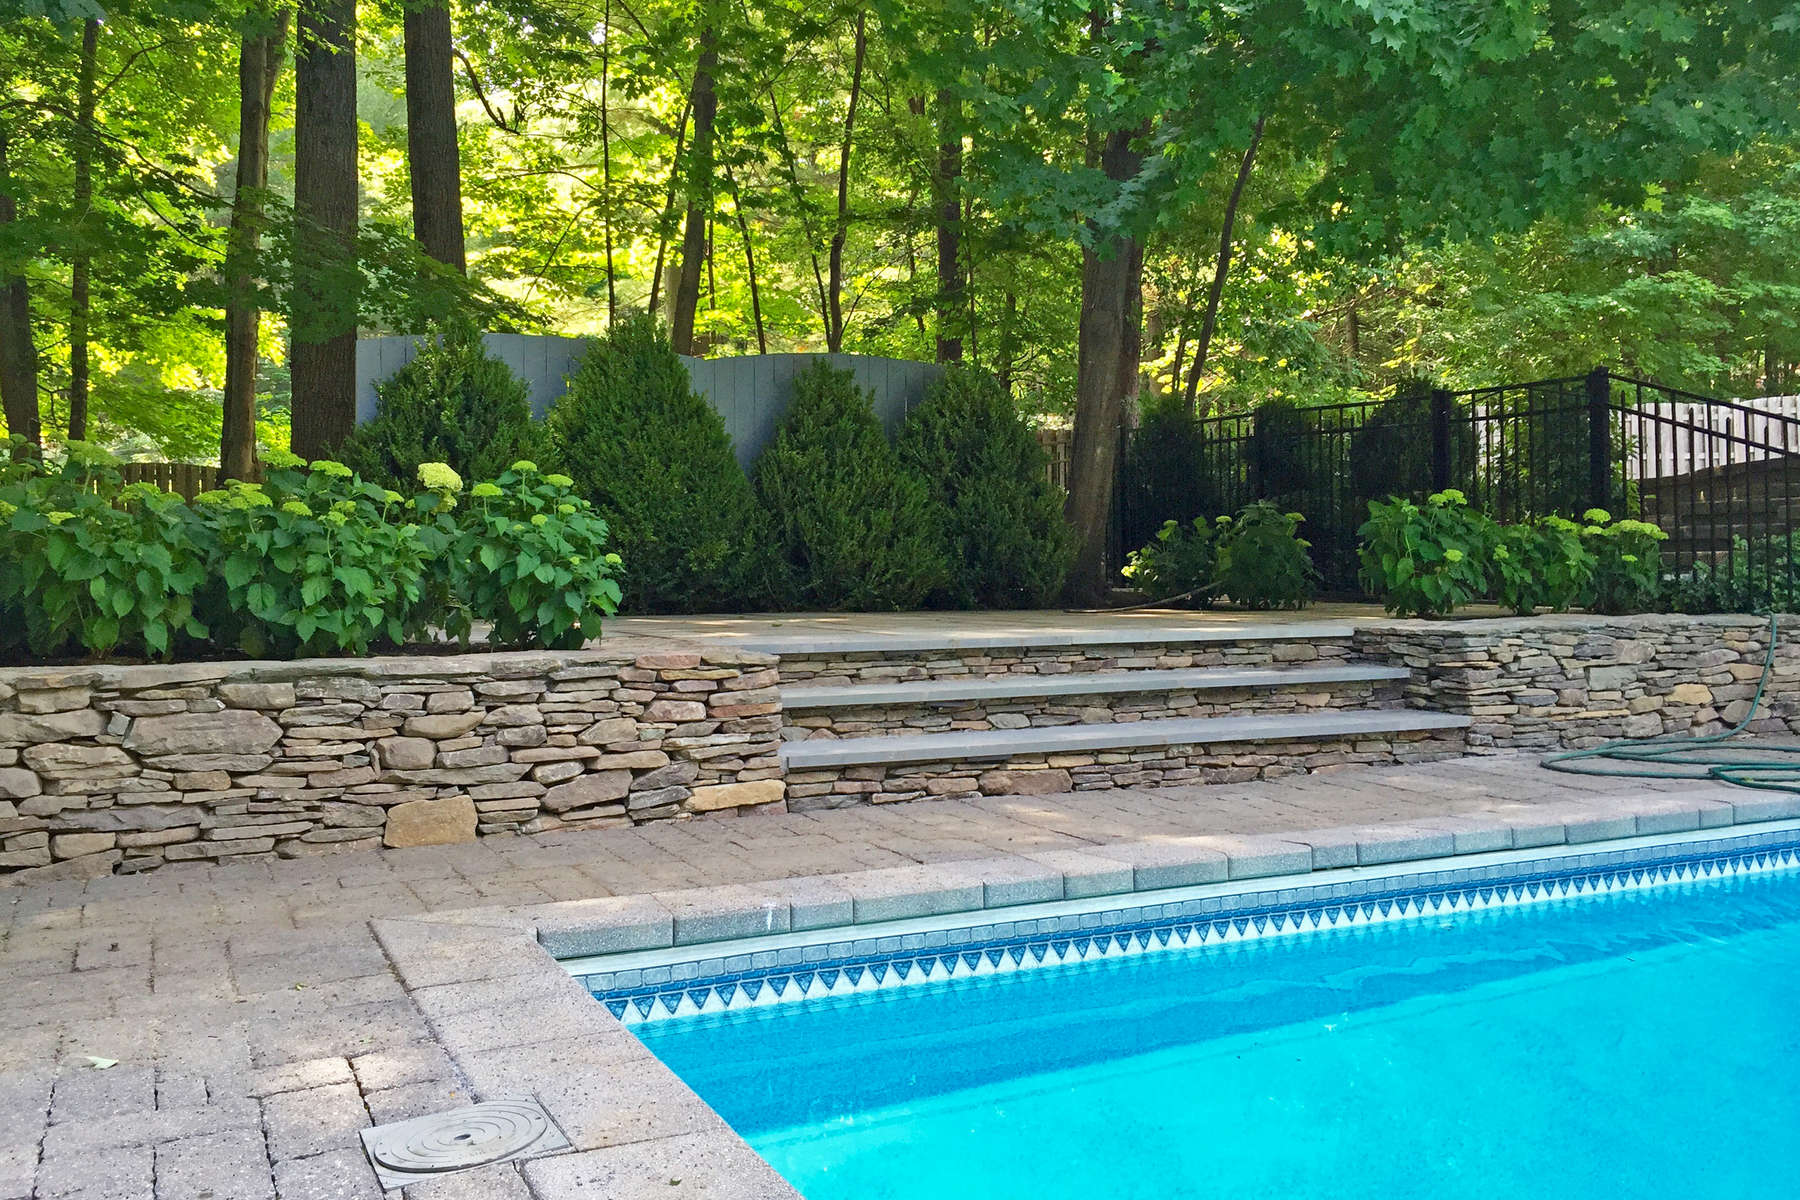 An elevated pool lounging area provides a focal vista to the pool and creates a shady garden room, which stays cool on the hottest of days.